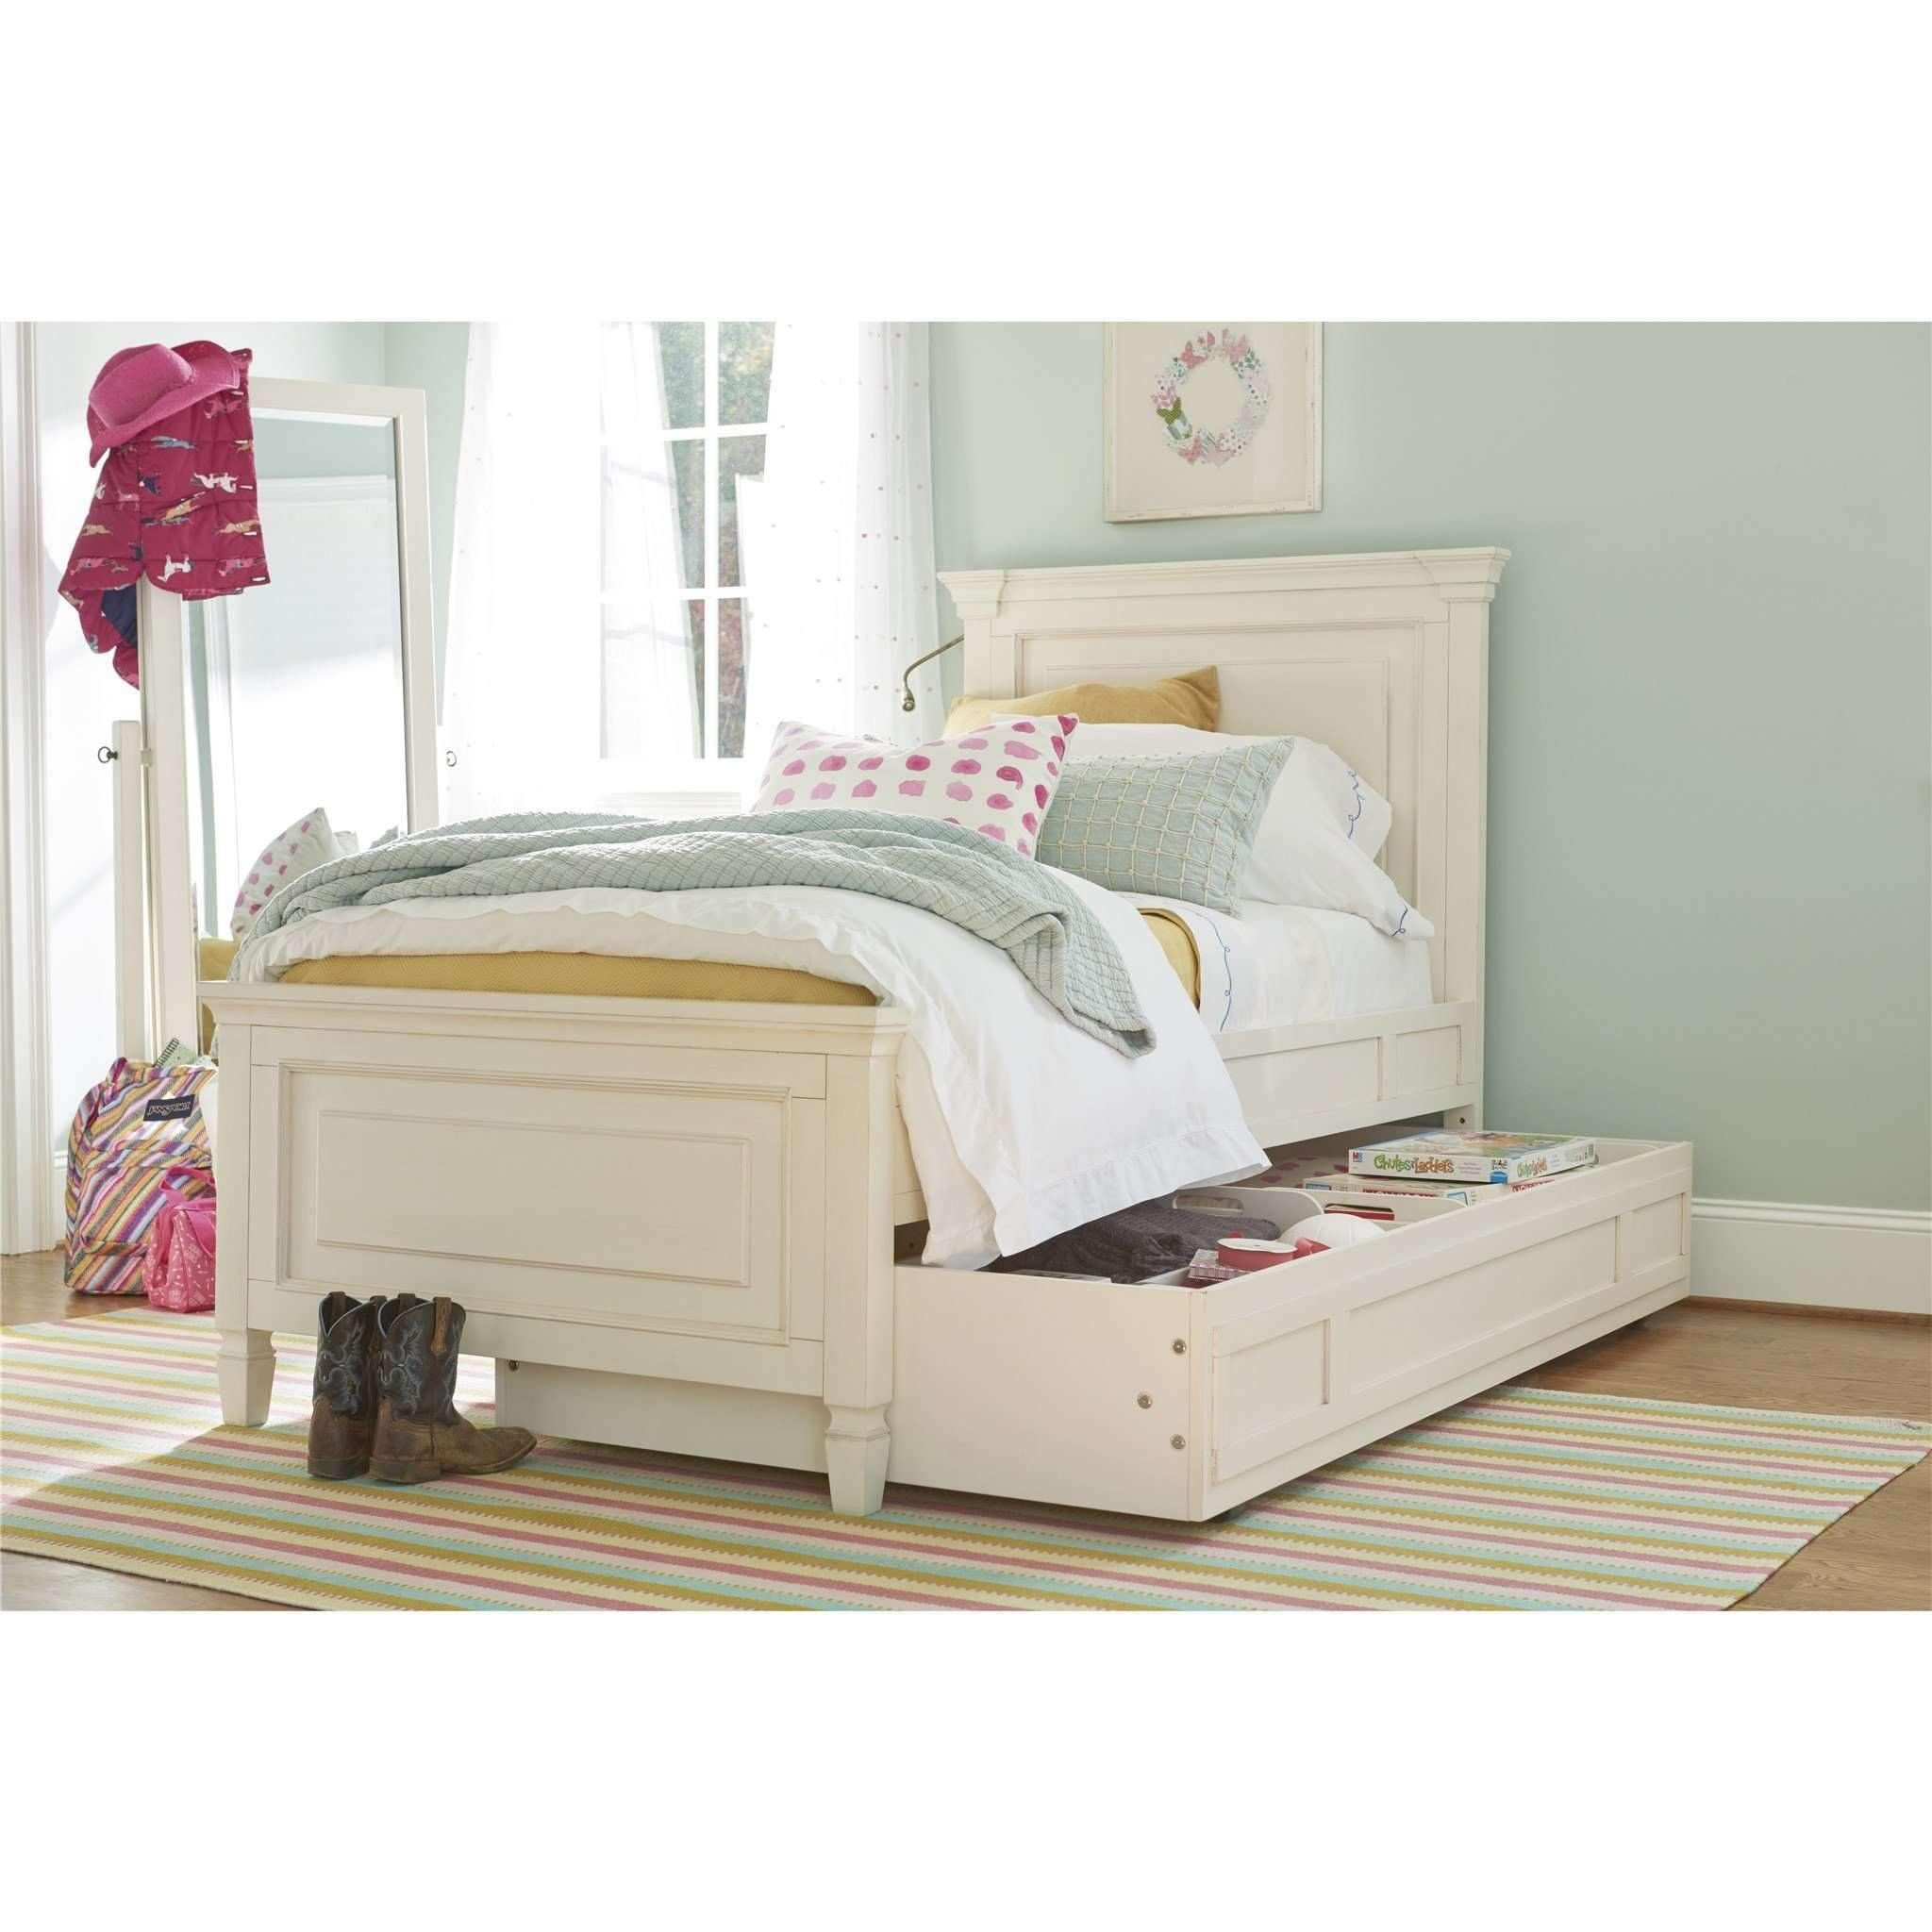 Pin on Daybed with trundle